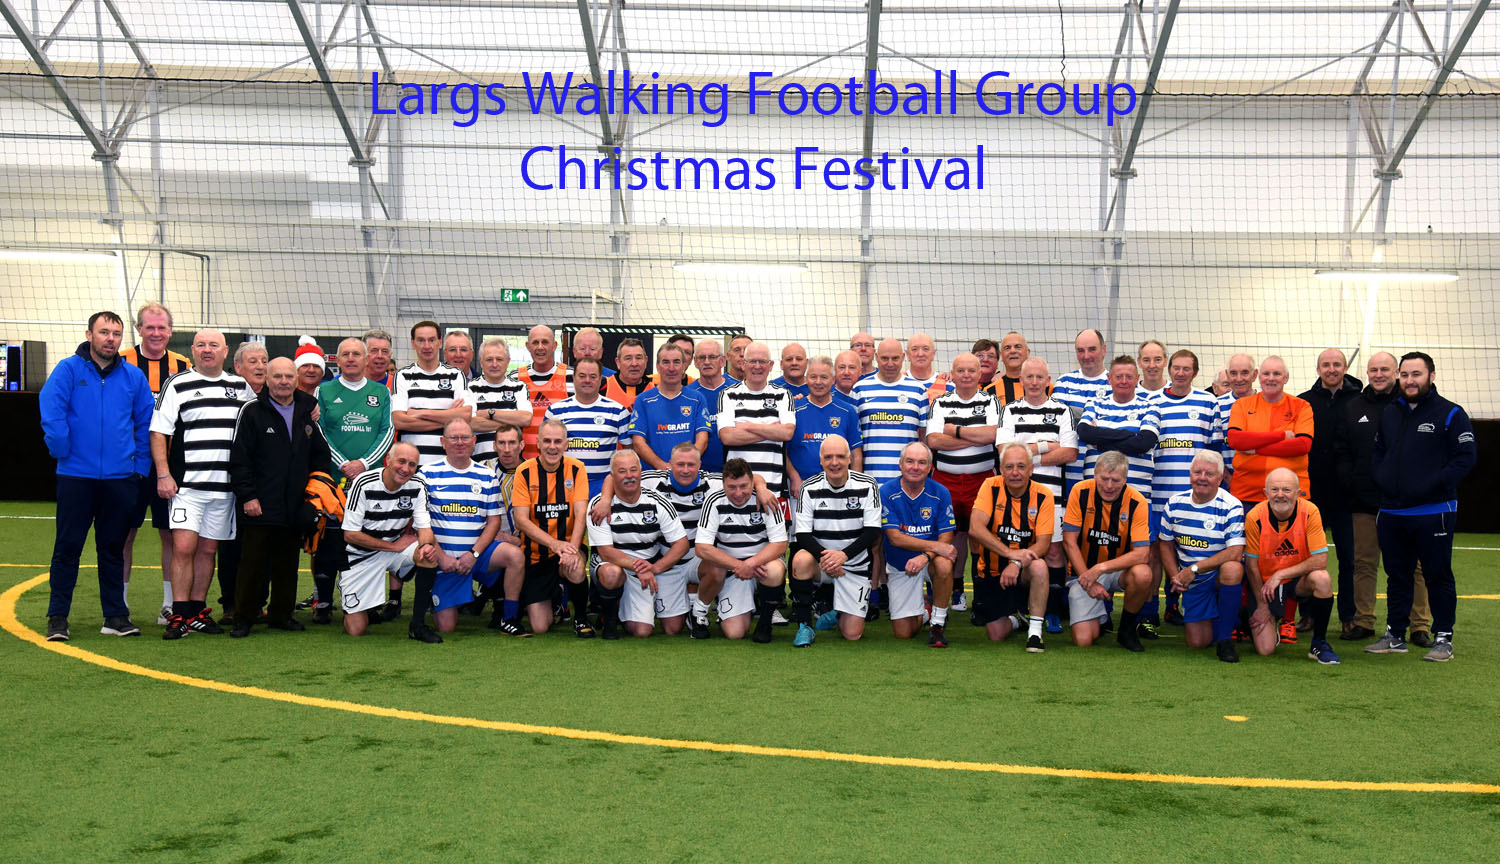 The teams who took part in the first walking football festival held in Largs.